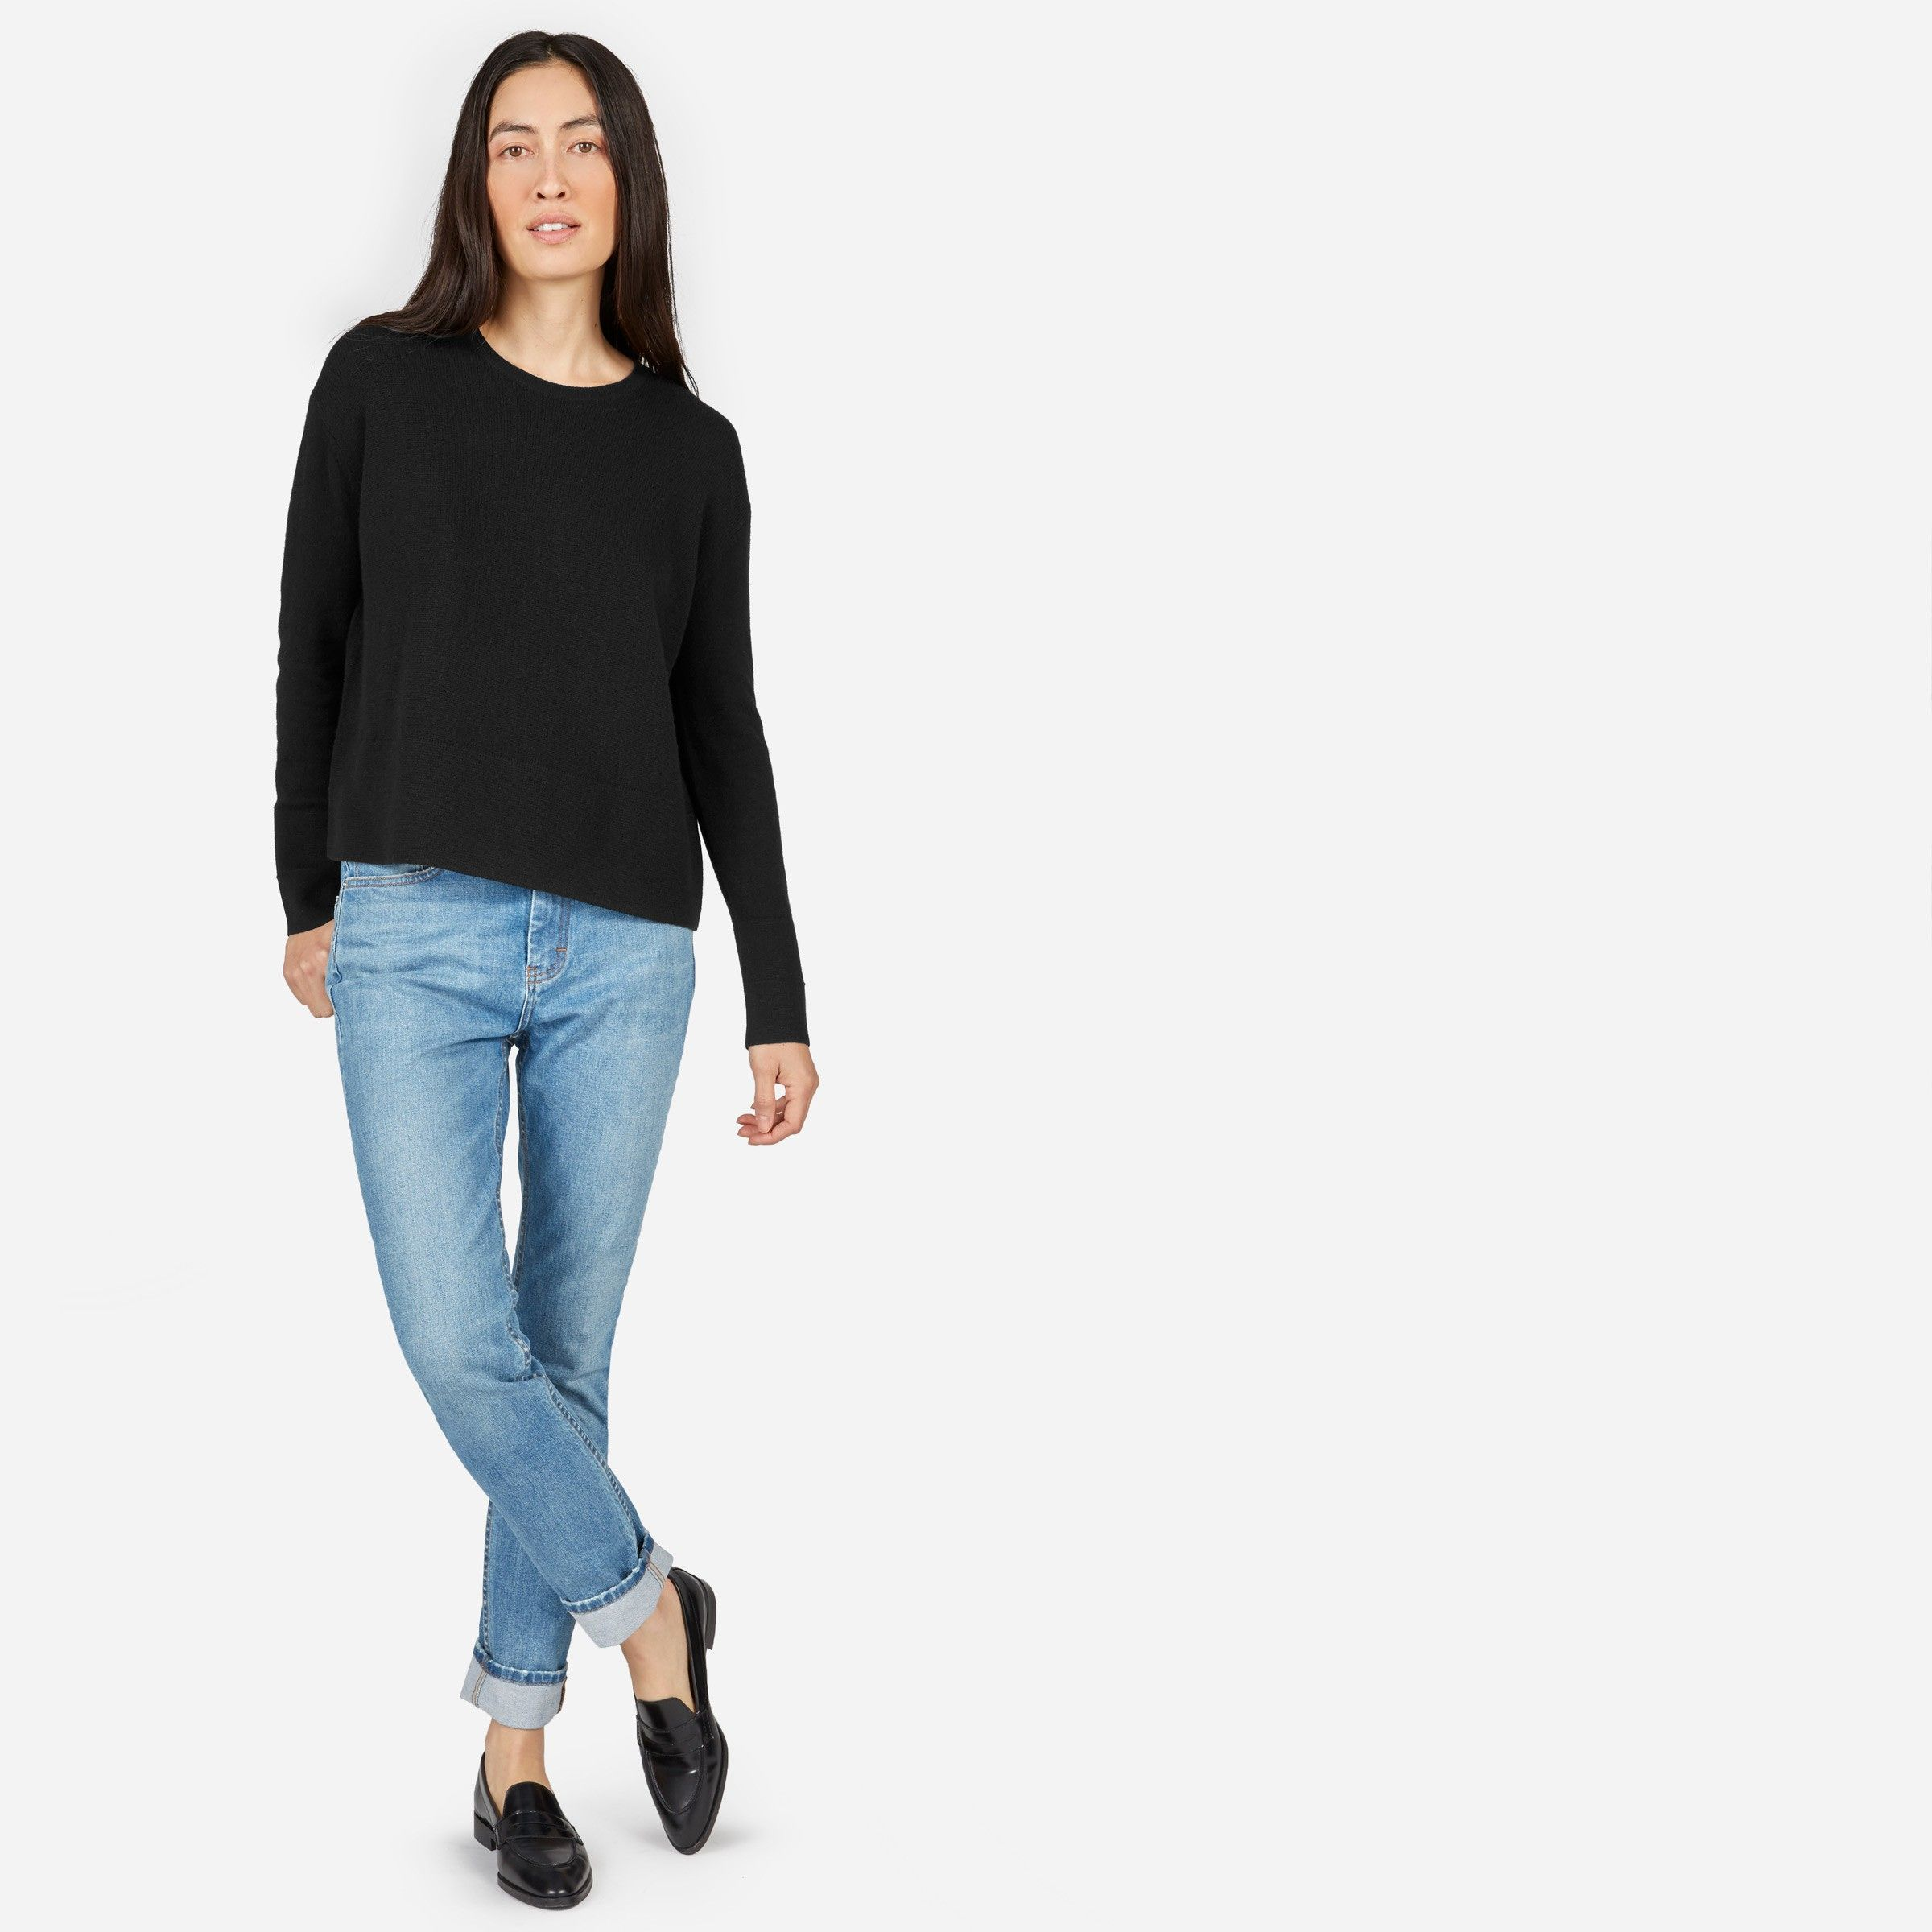 How to take cashmere into spring. We gave our favorite Grade-A cashmere crew a higher neckline and oversized square silhouette, plus paneling at the hem for a textural touch. Refined over a dress, cozy with trousers.